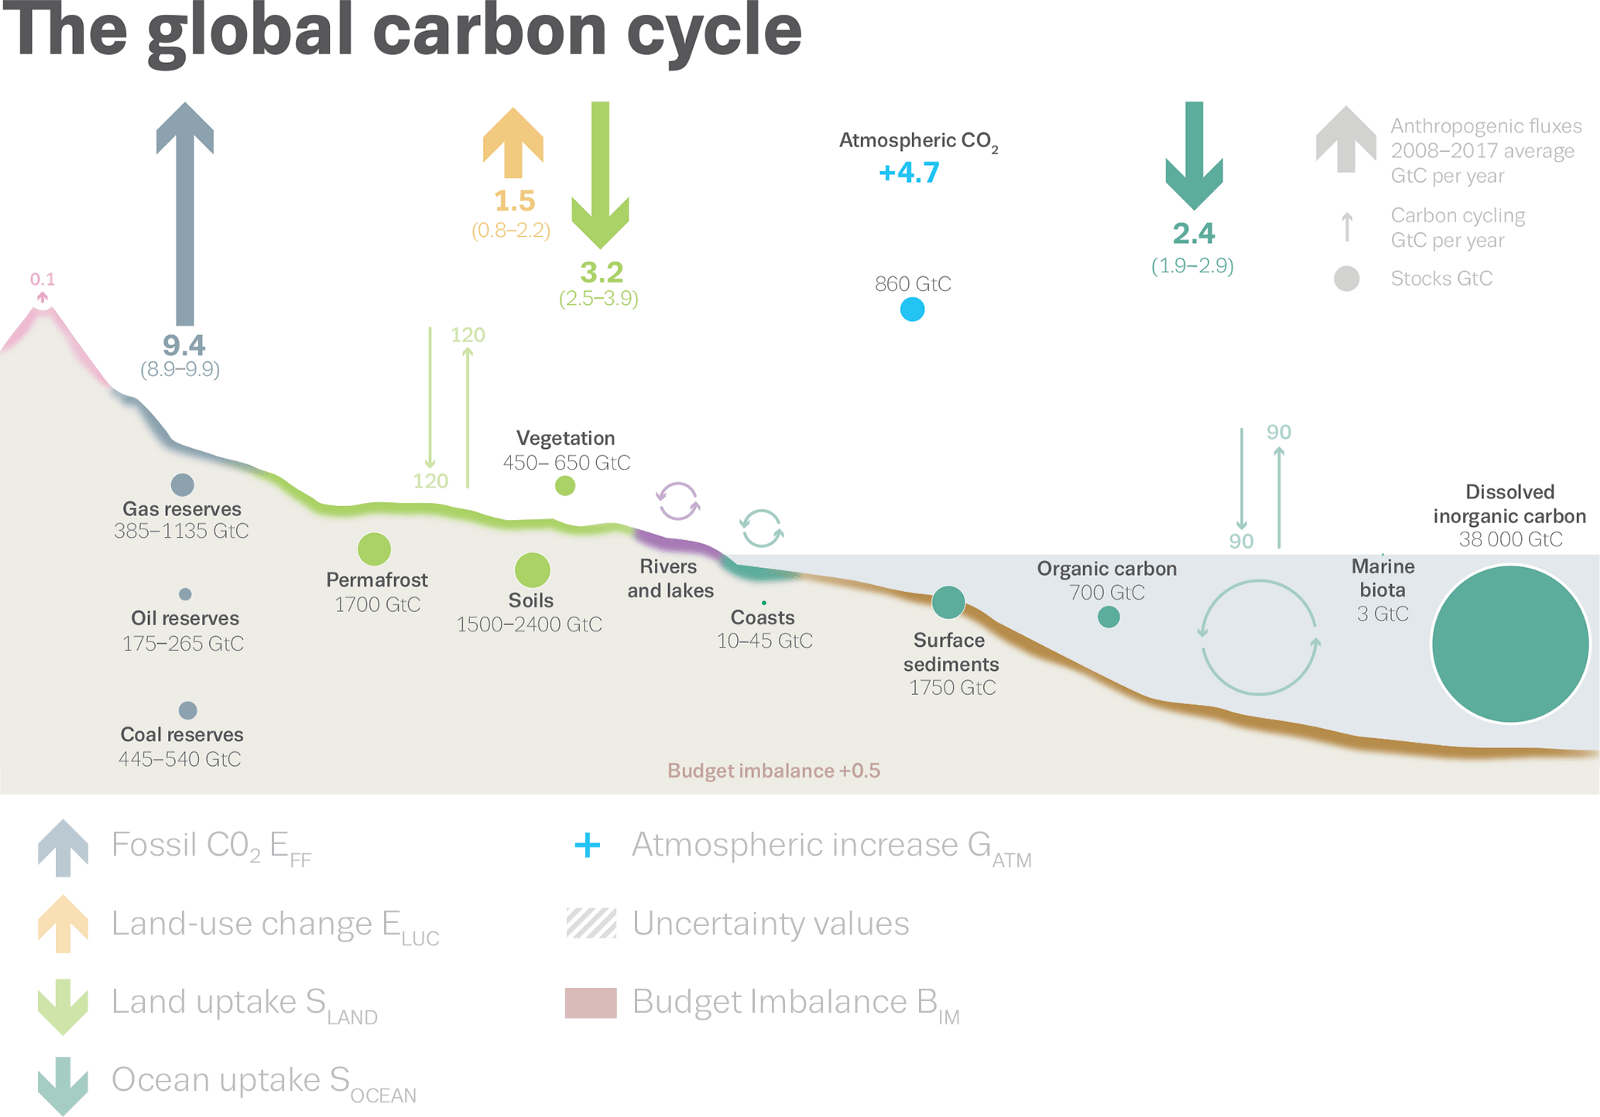 hight resolution of schematic representation of the overall perturbation of the global carbon cycle caused by anthropogenic activities averaged globally for the decade